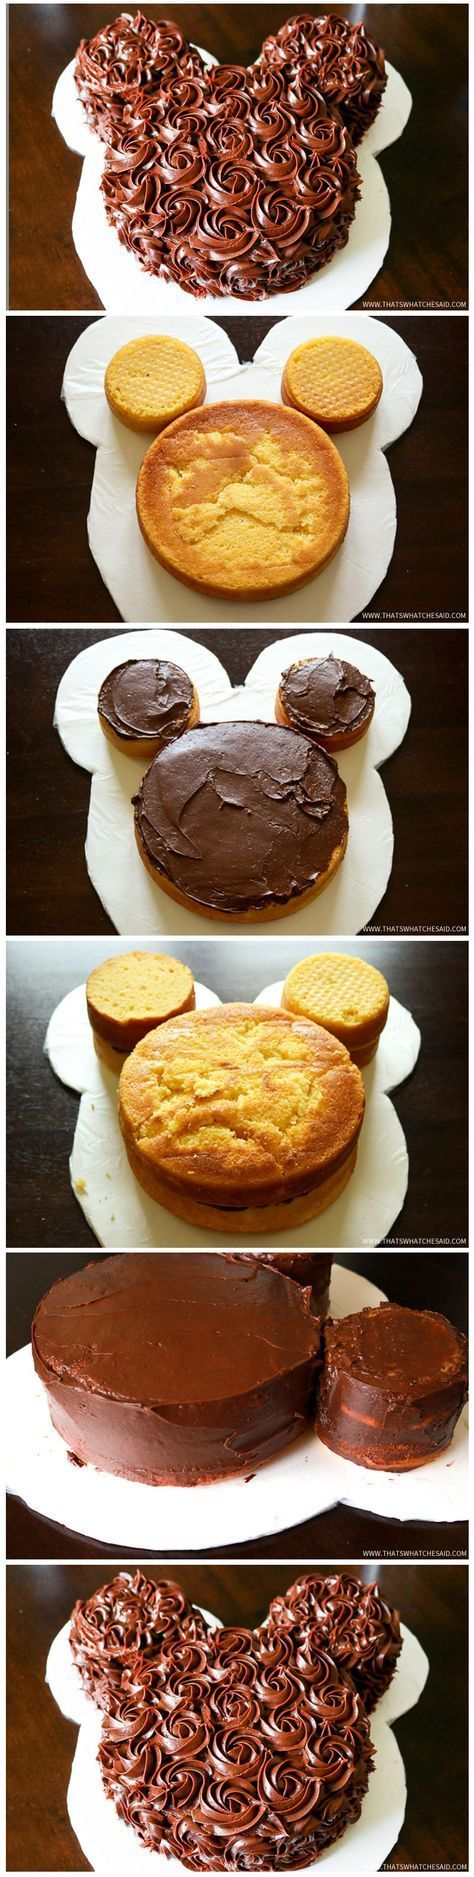 Rose Iced Mickey Mouse Cake!  No reason Mickey can't be elegant, fun and delicious!